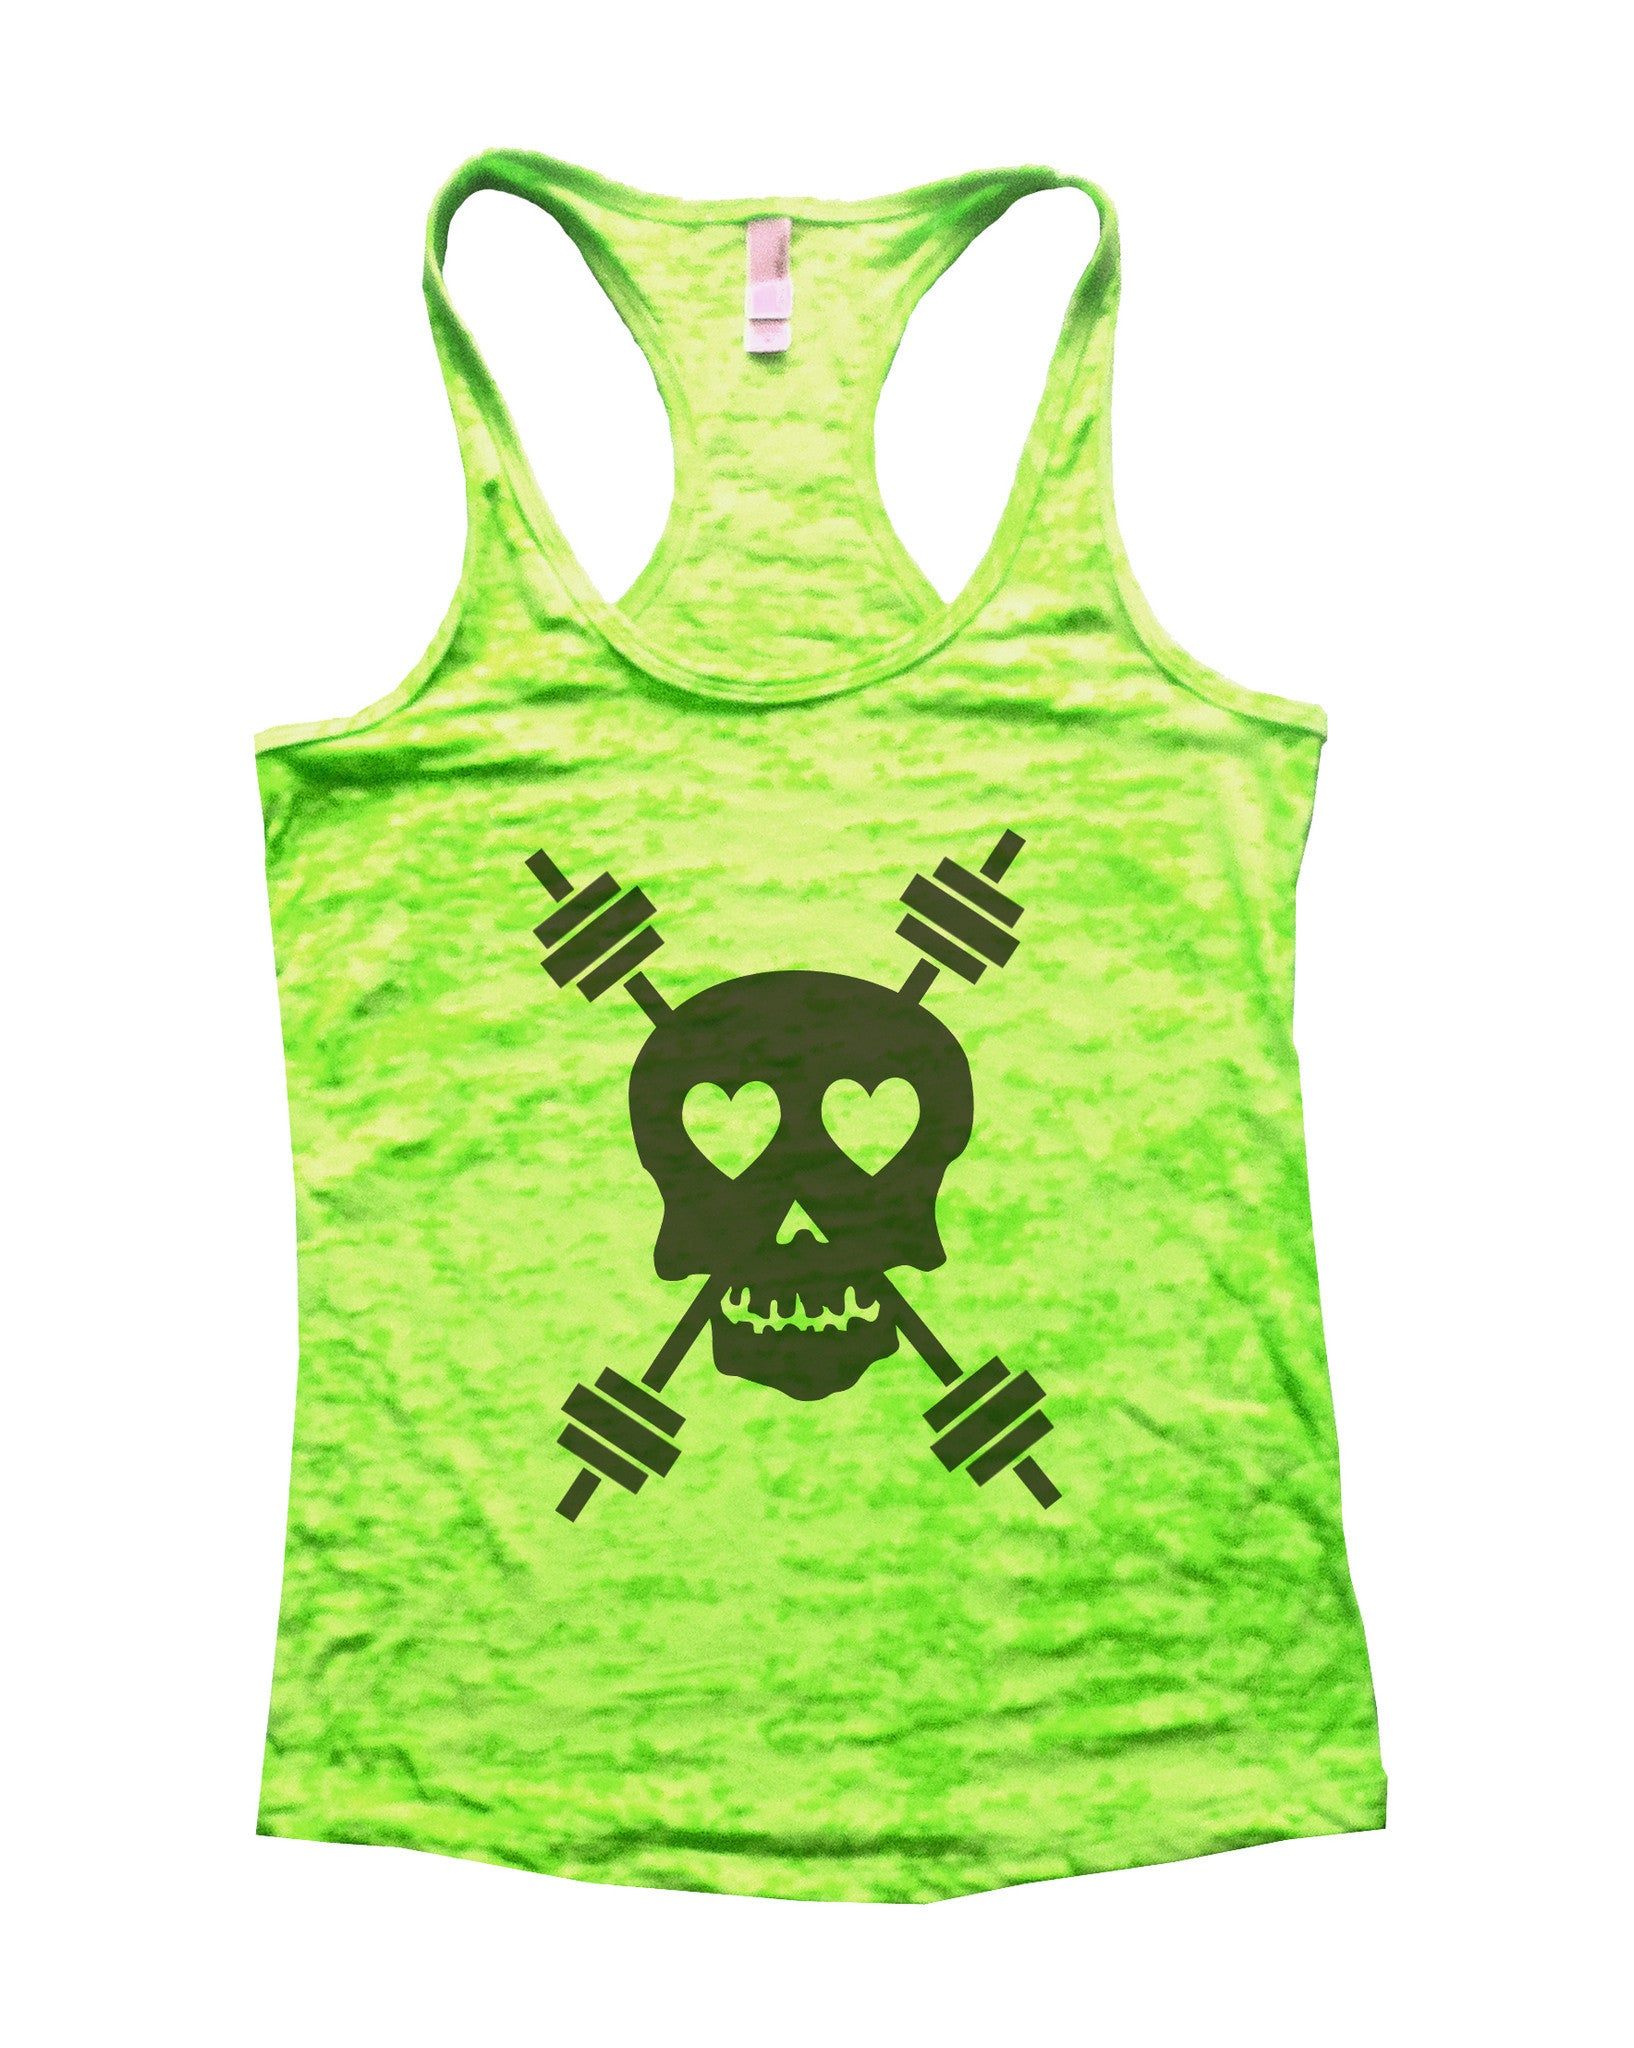 Skull And Weight Bars Burnout Tank Top By BurnoutTankTops.com - 653 - Funny Shirts Tank Tops Burnouts and Triblends  - 1